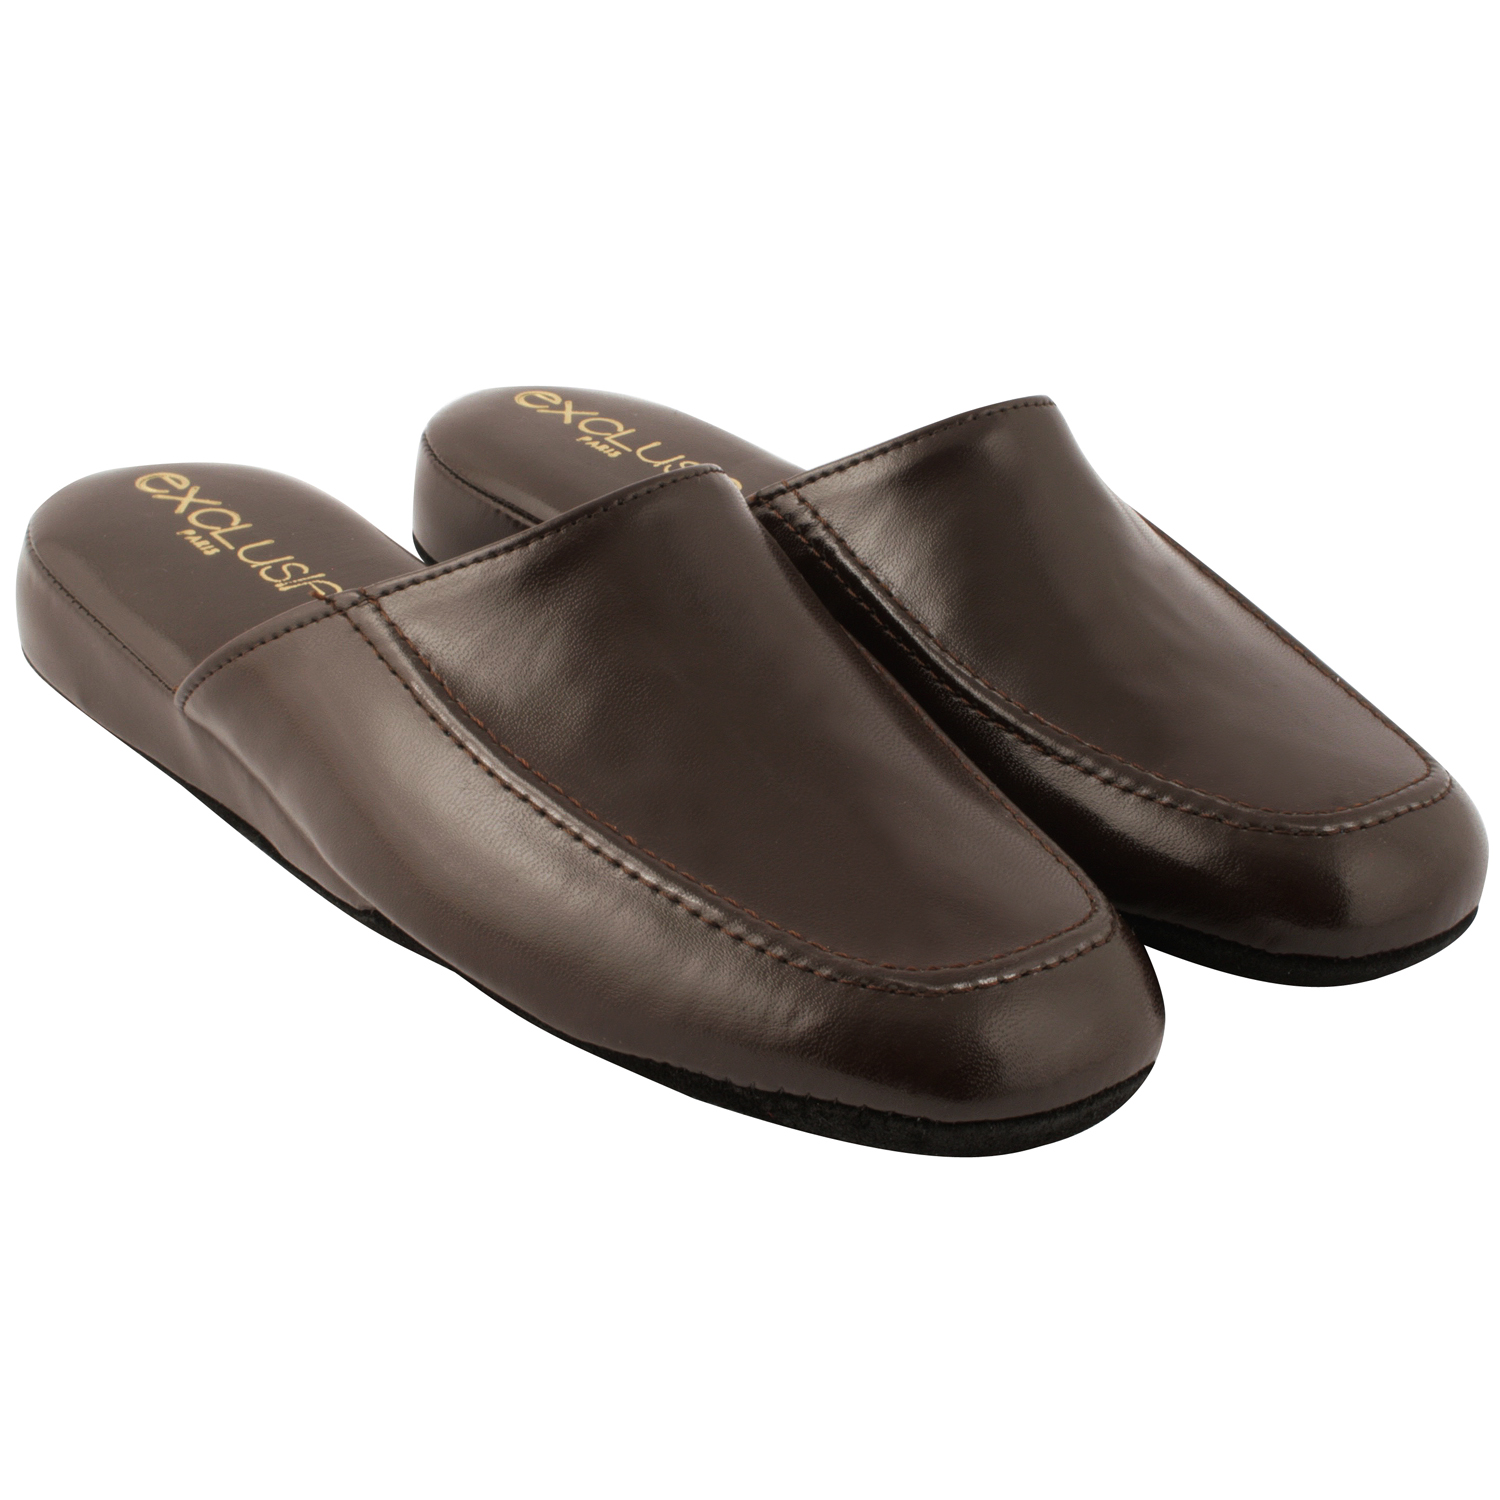 Exclusif Paris Chaussons Relax Marron - Chaussures Chaussons Homme